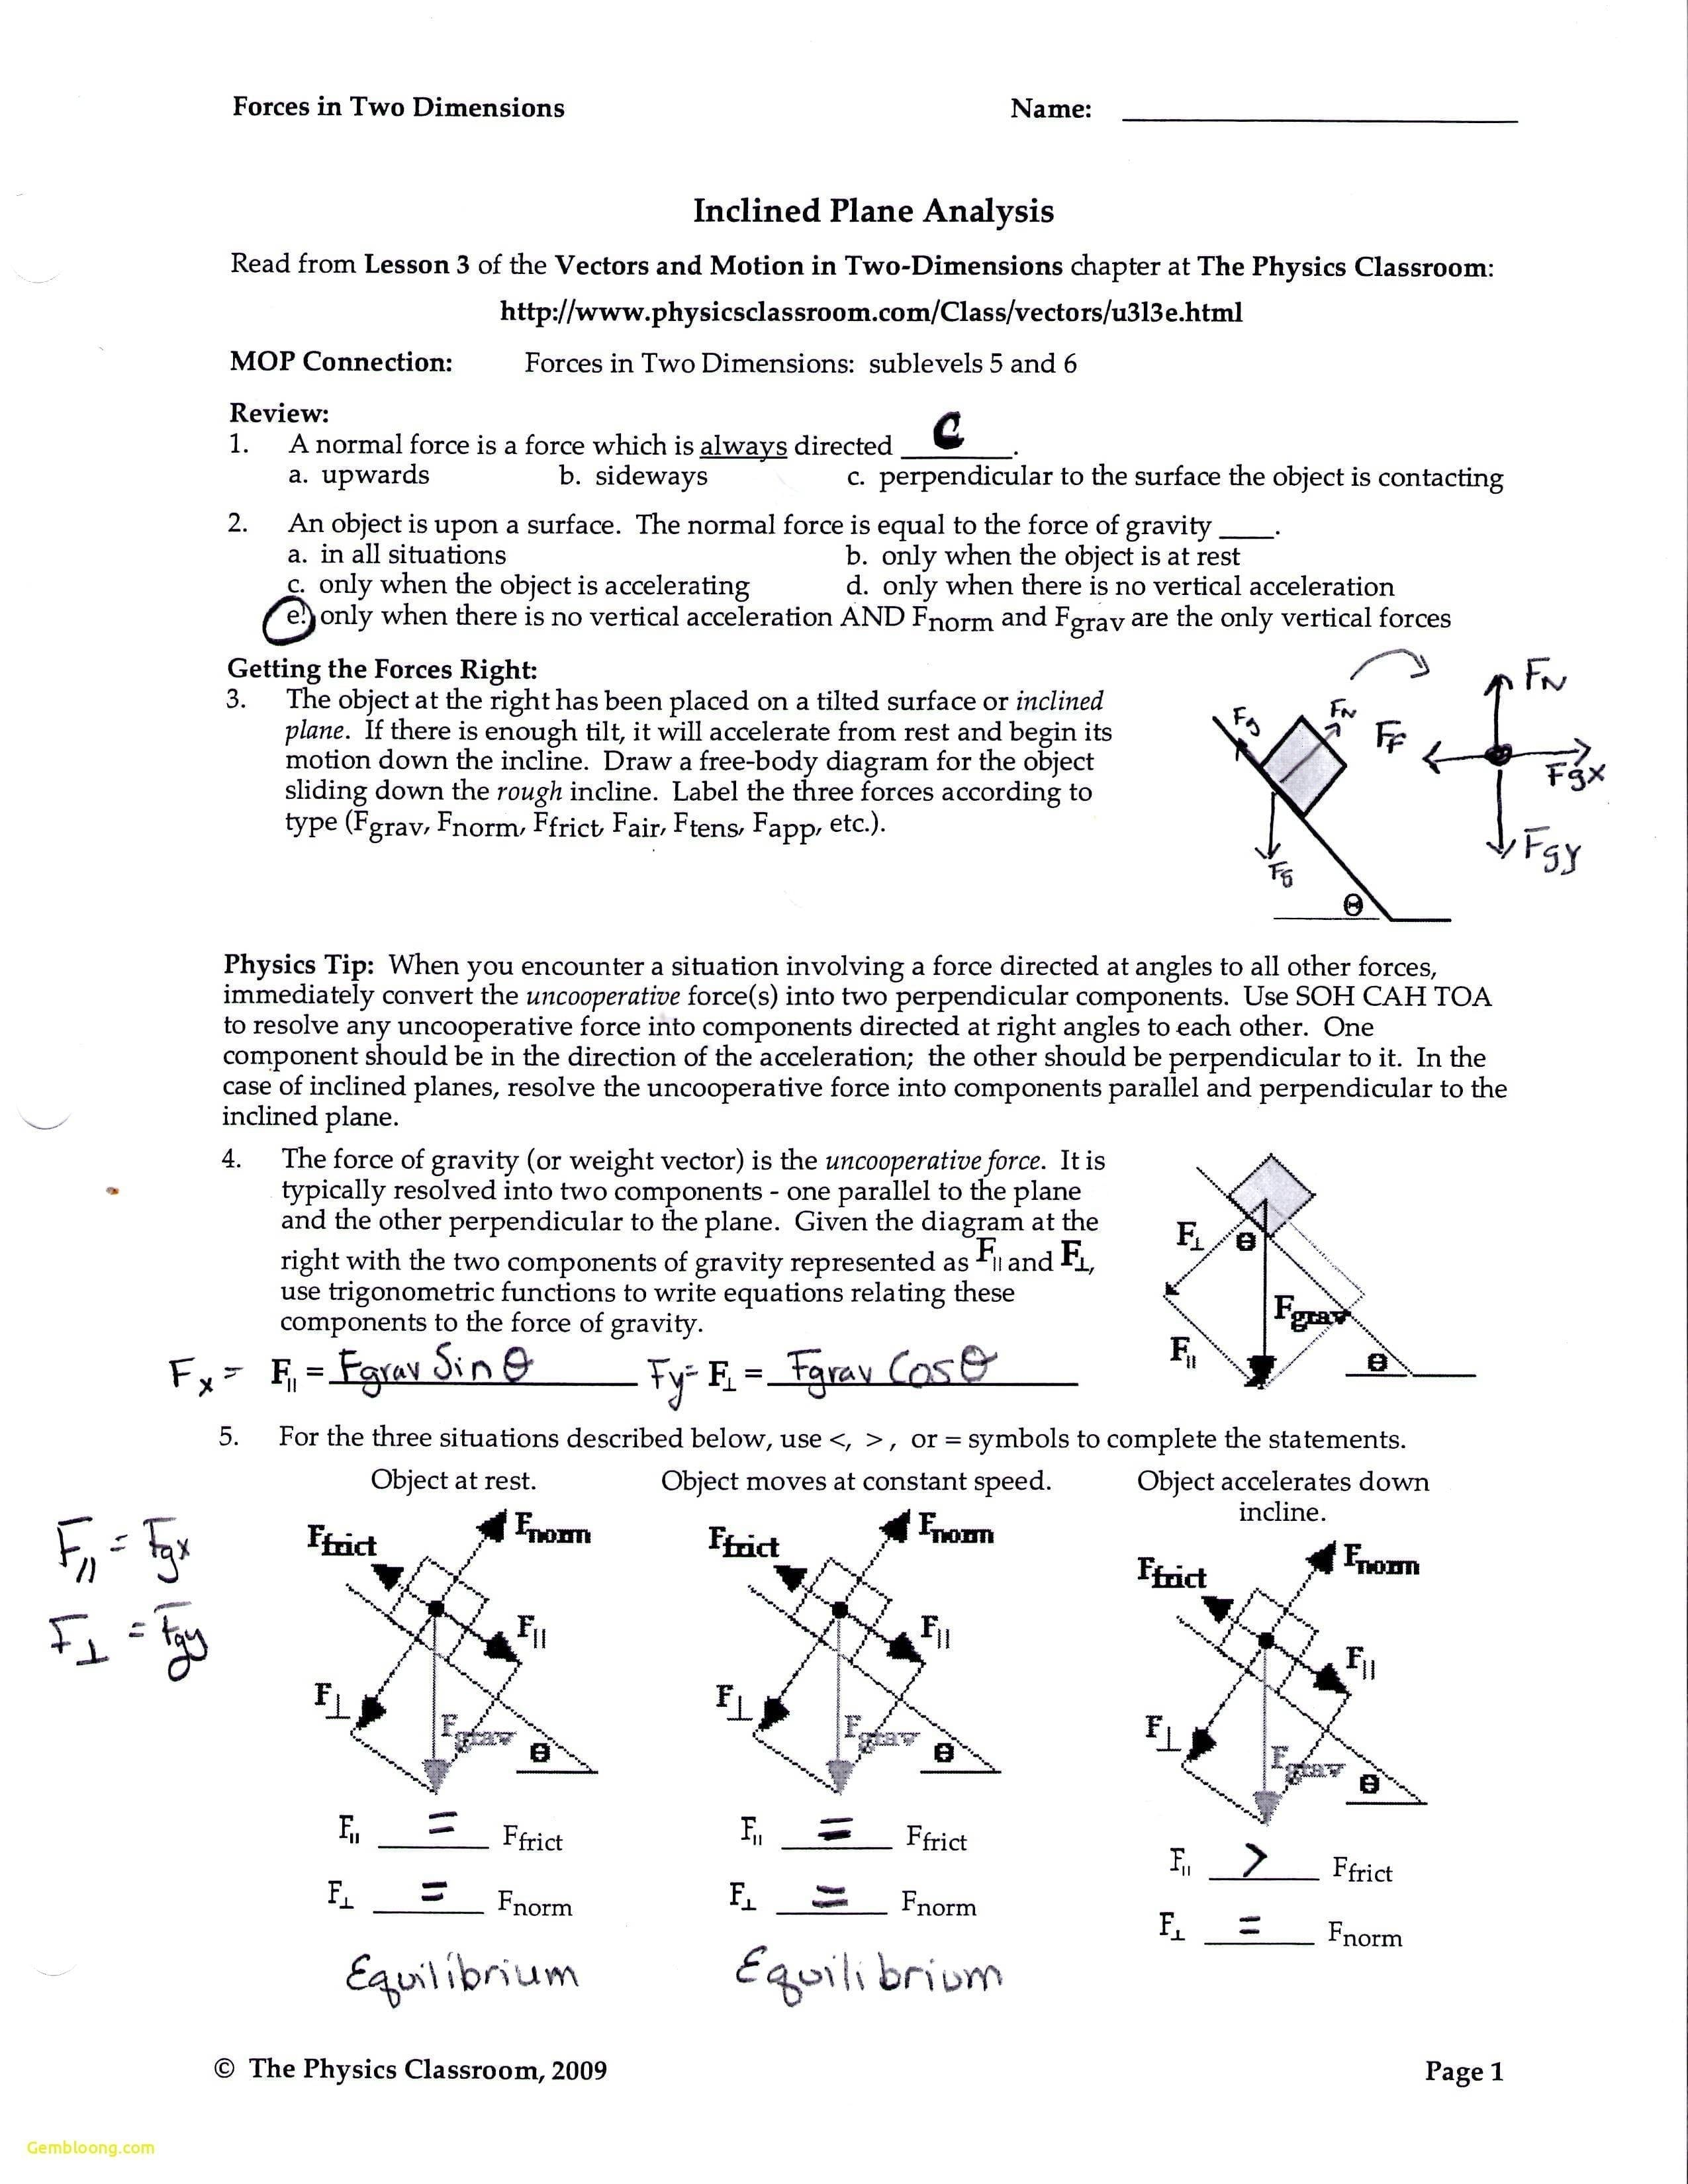 Chemical Equilibrium Worksheet Answers  Cramerforcongress Also Weight Friction And Equilibrium Worksheet Answers